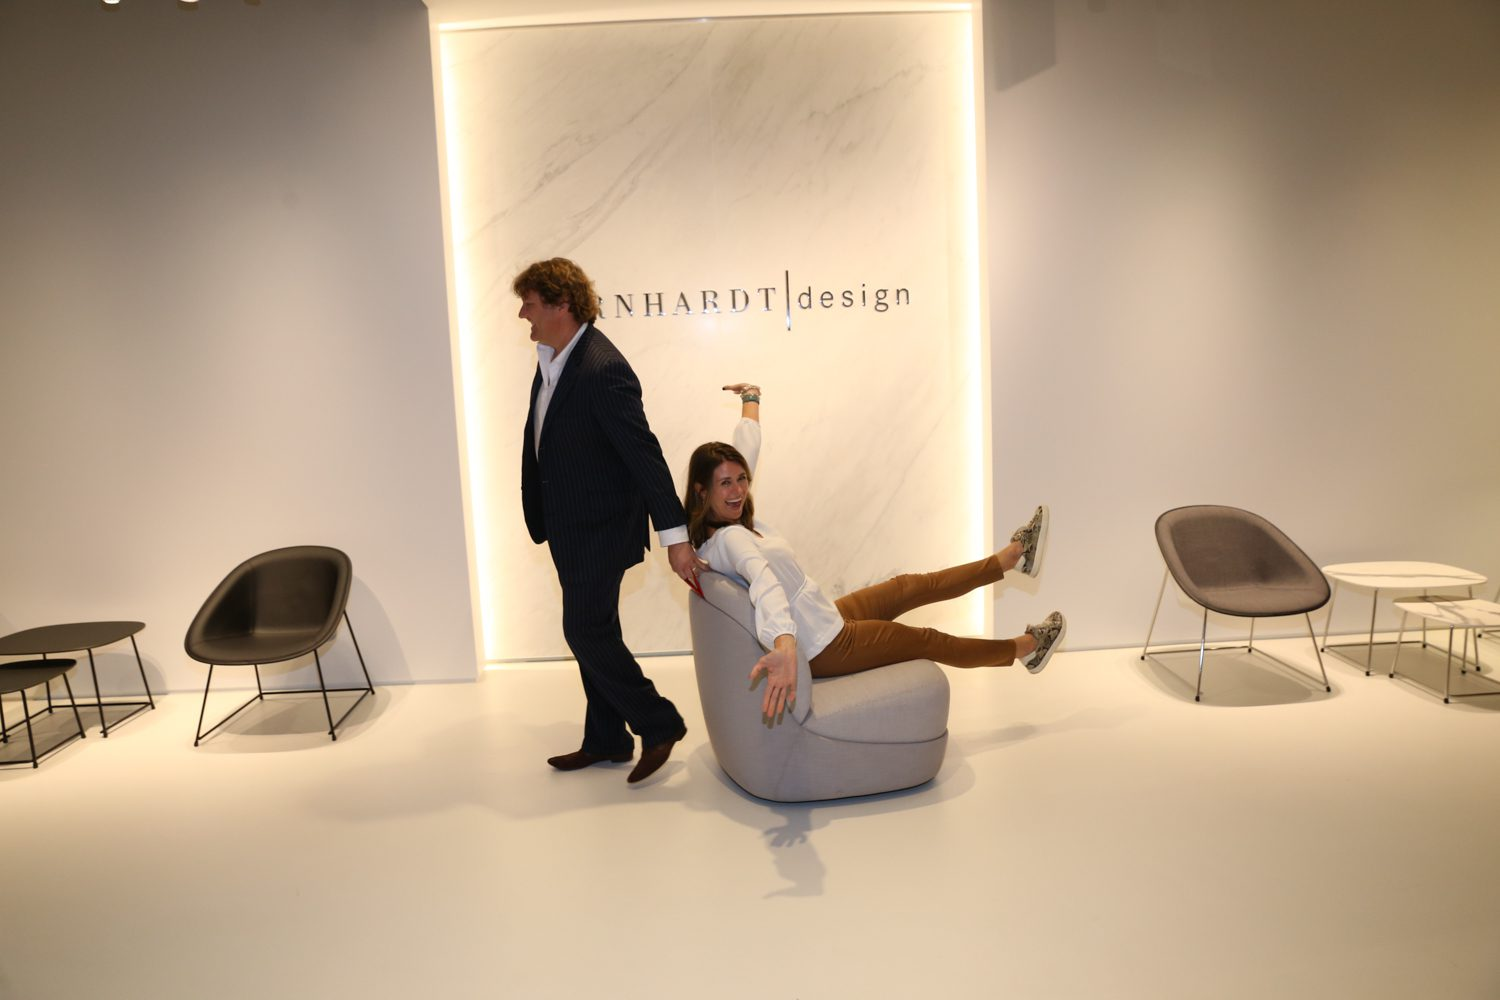 Clayton Oxford, director of marketing business production, and Tracy Bennett, sales, at Bernhardt Design with Automatic chair by Cory Grosser.